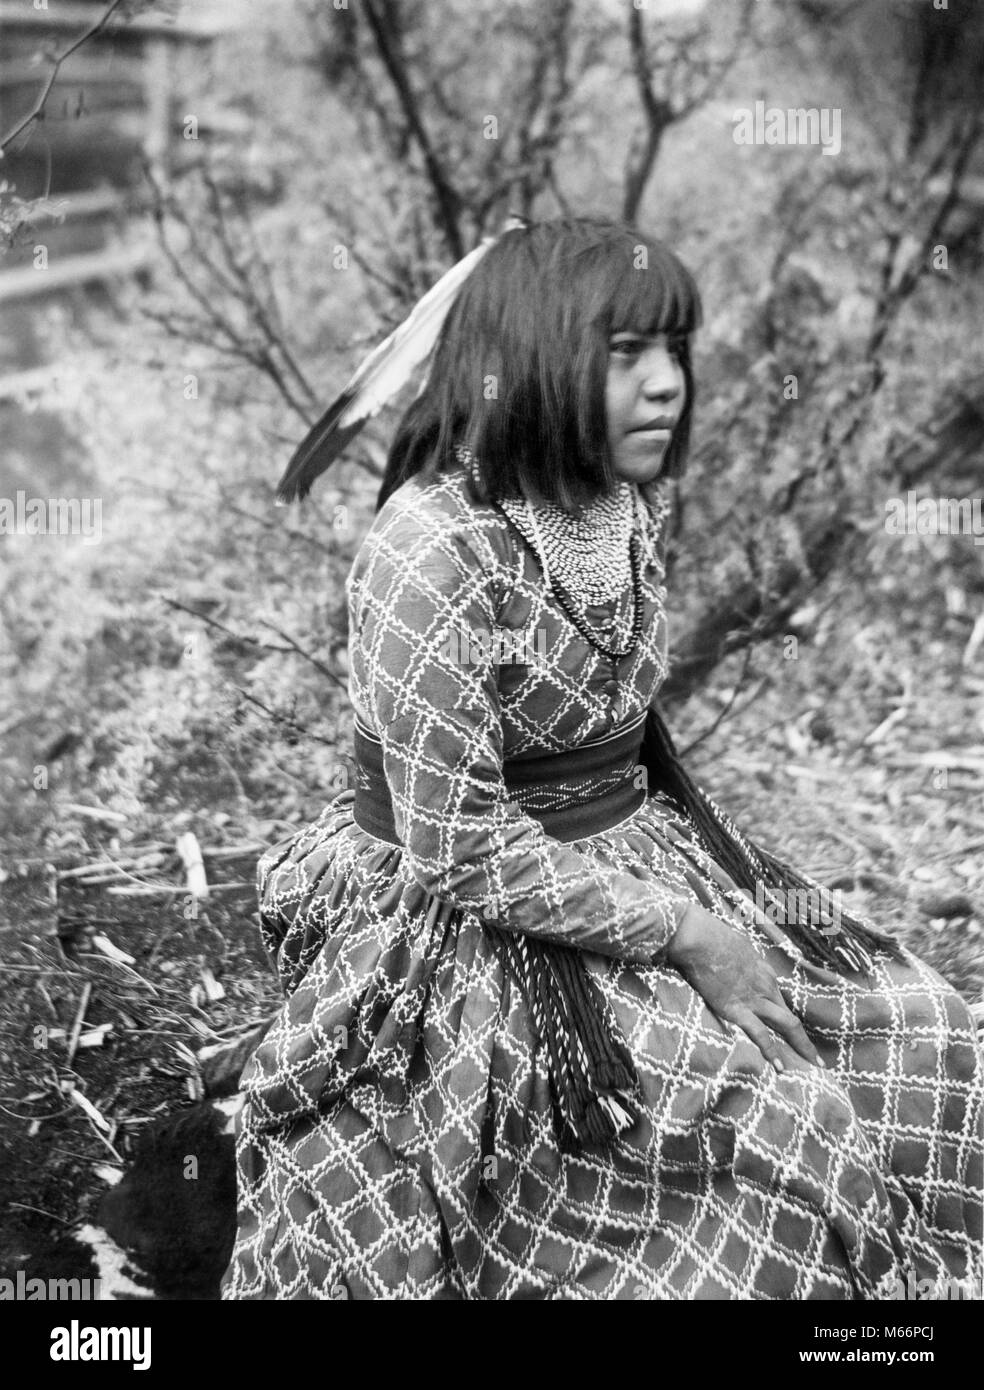 1890s 1899 PORTRAIT NATIVE AMERICAN HAVASUPAI INDIAN WOMAN BY G. WHARTON JAMES - q73436 CPC001 HARS ONE PERSON ONLY - Stock Image